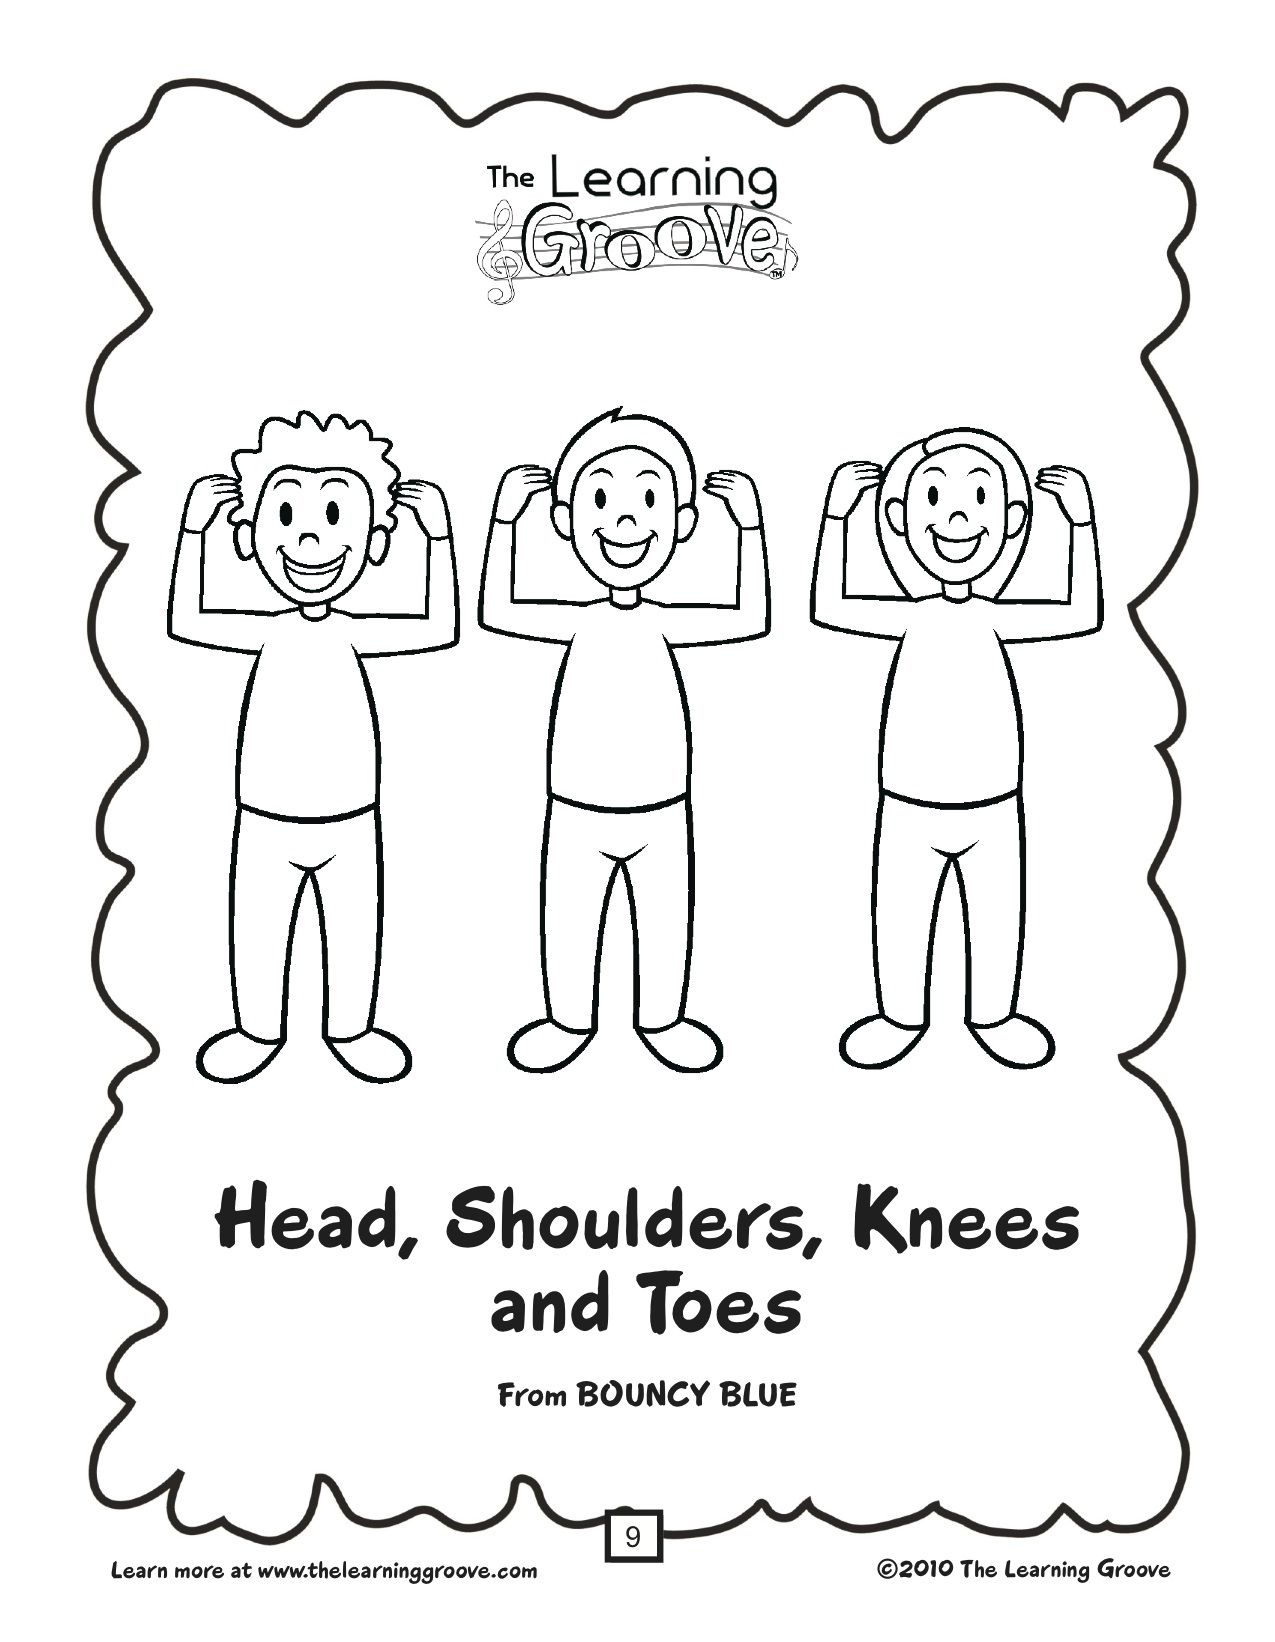 Head, Shoulders, Knees, and Toes by Eric Litwin and